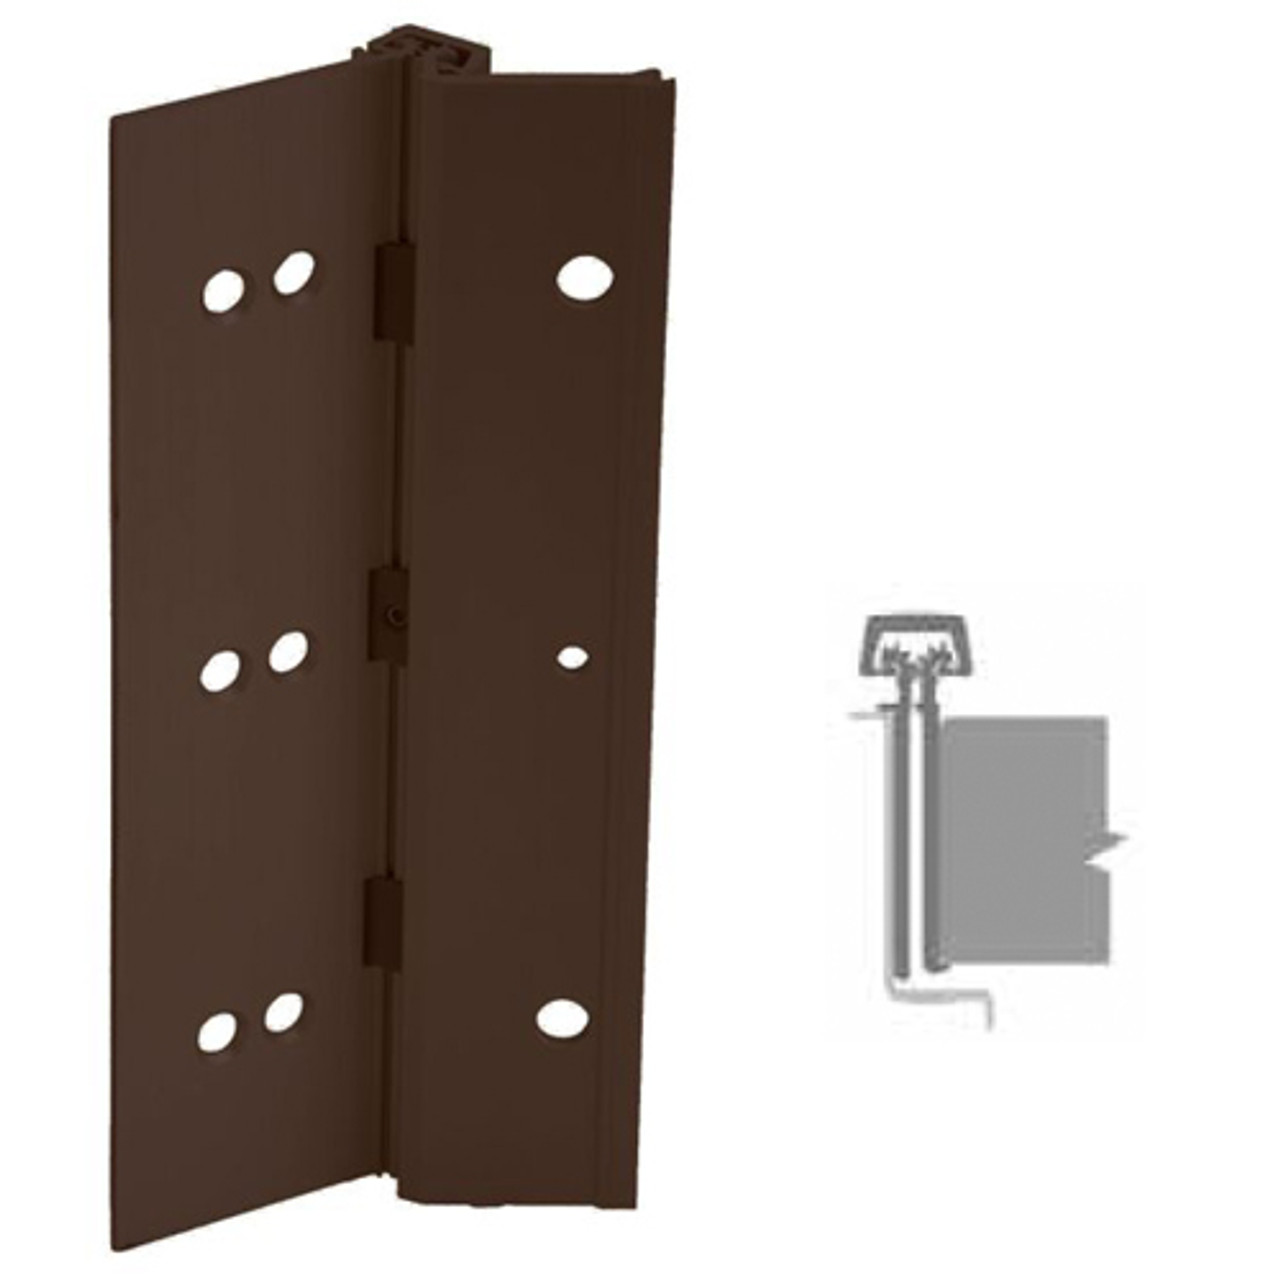 224HD-313AN-83-EPT IVES Full Mortise Continuous Geared Hinges with  Electrical Power Transfer Prep in Dark Bronze Anodized